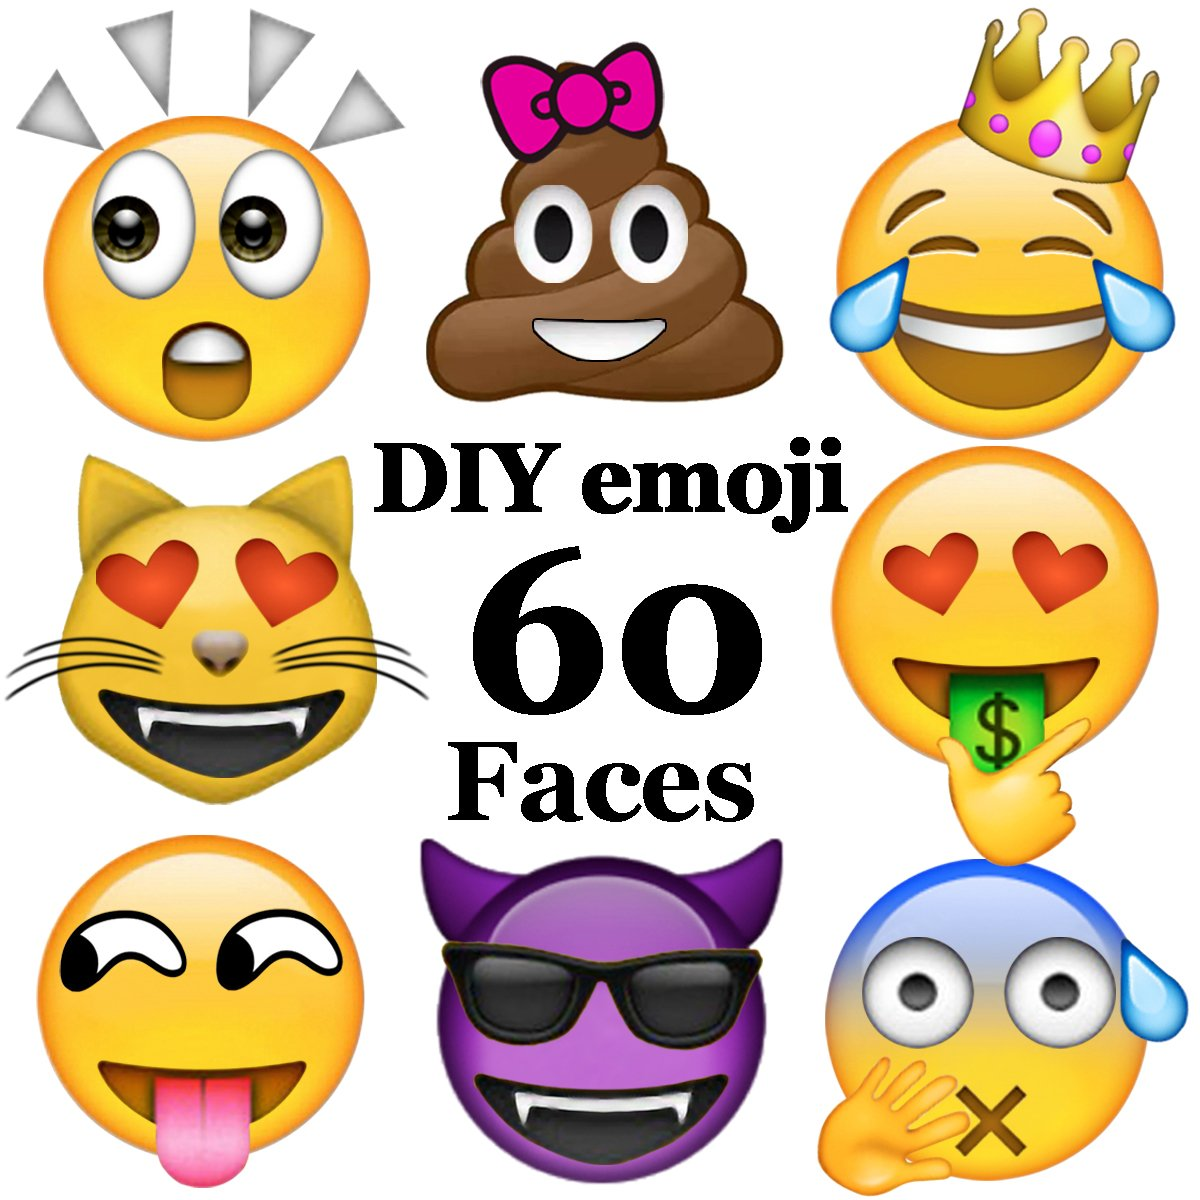 Ivenf 60 Faces DIY Extra Large Fun Emoji Face Stickers, Teacher Reward Stickers for Prizes, Kids Party Supplies Favors Decoration Games, 9 sheets